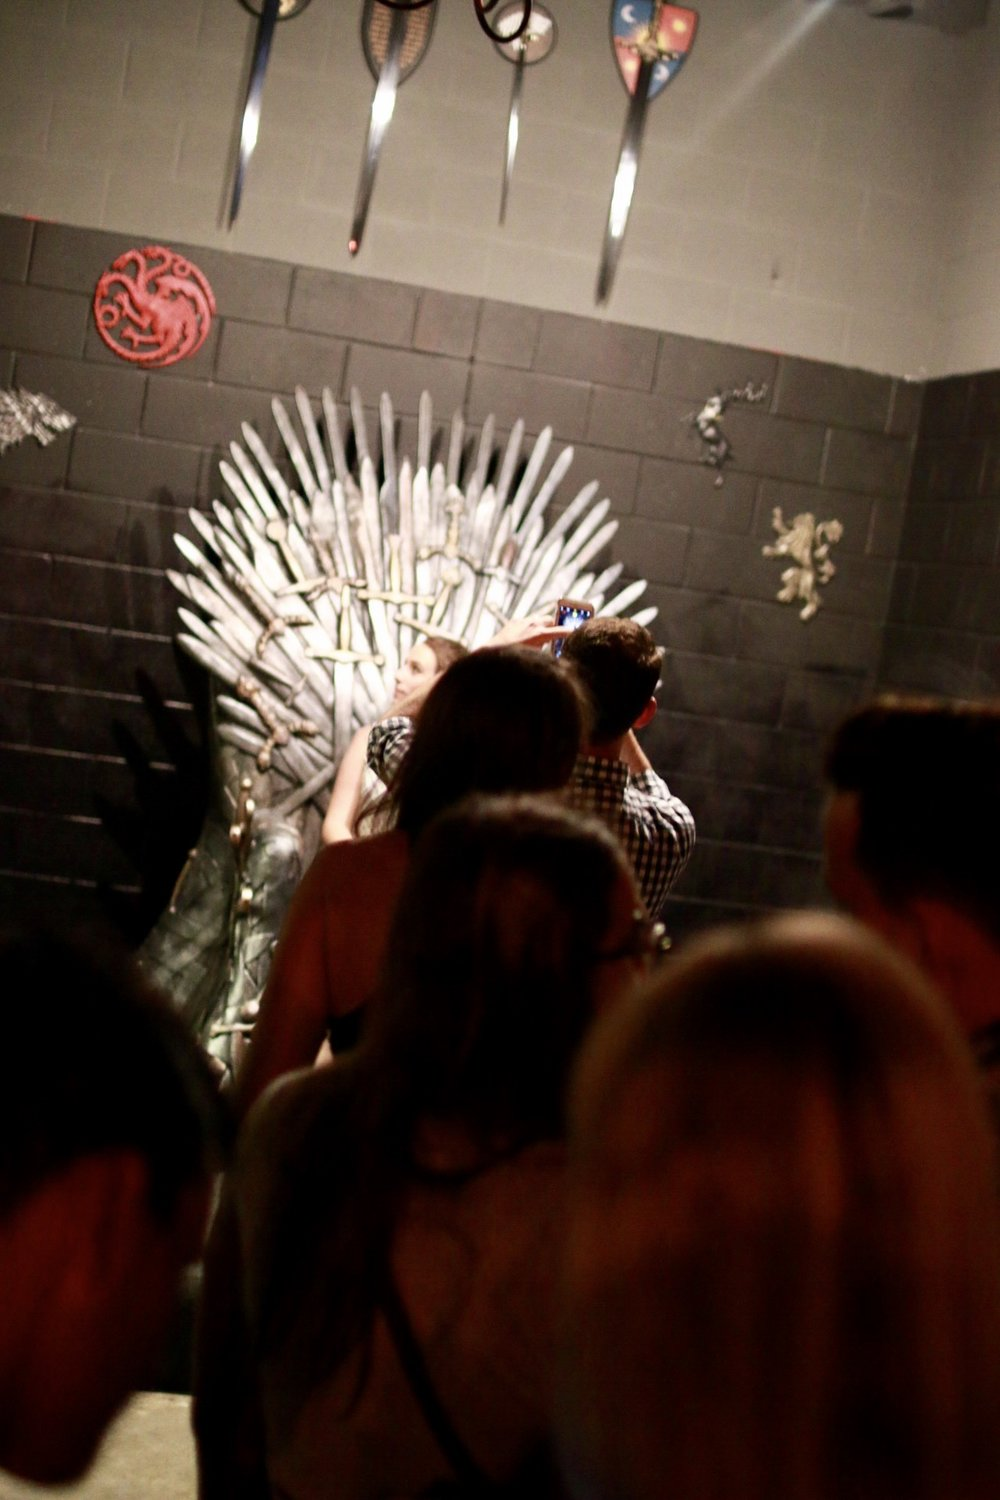 game of thrones pop up theme bar washington dc GOT pub